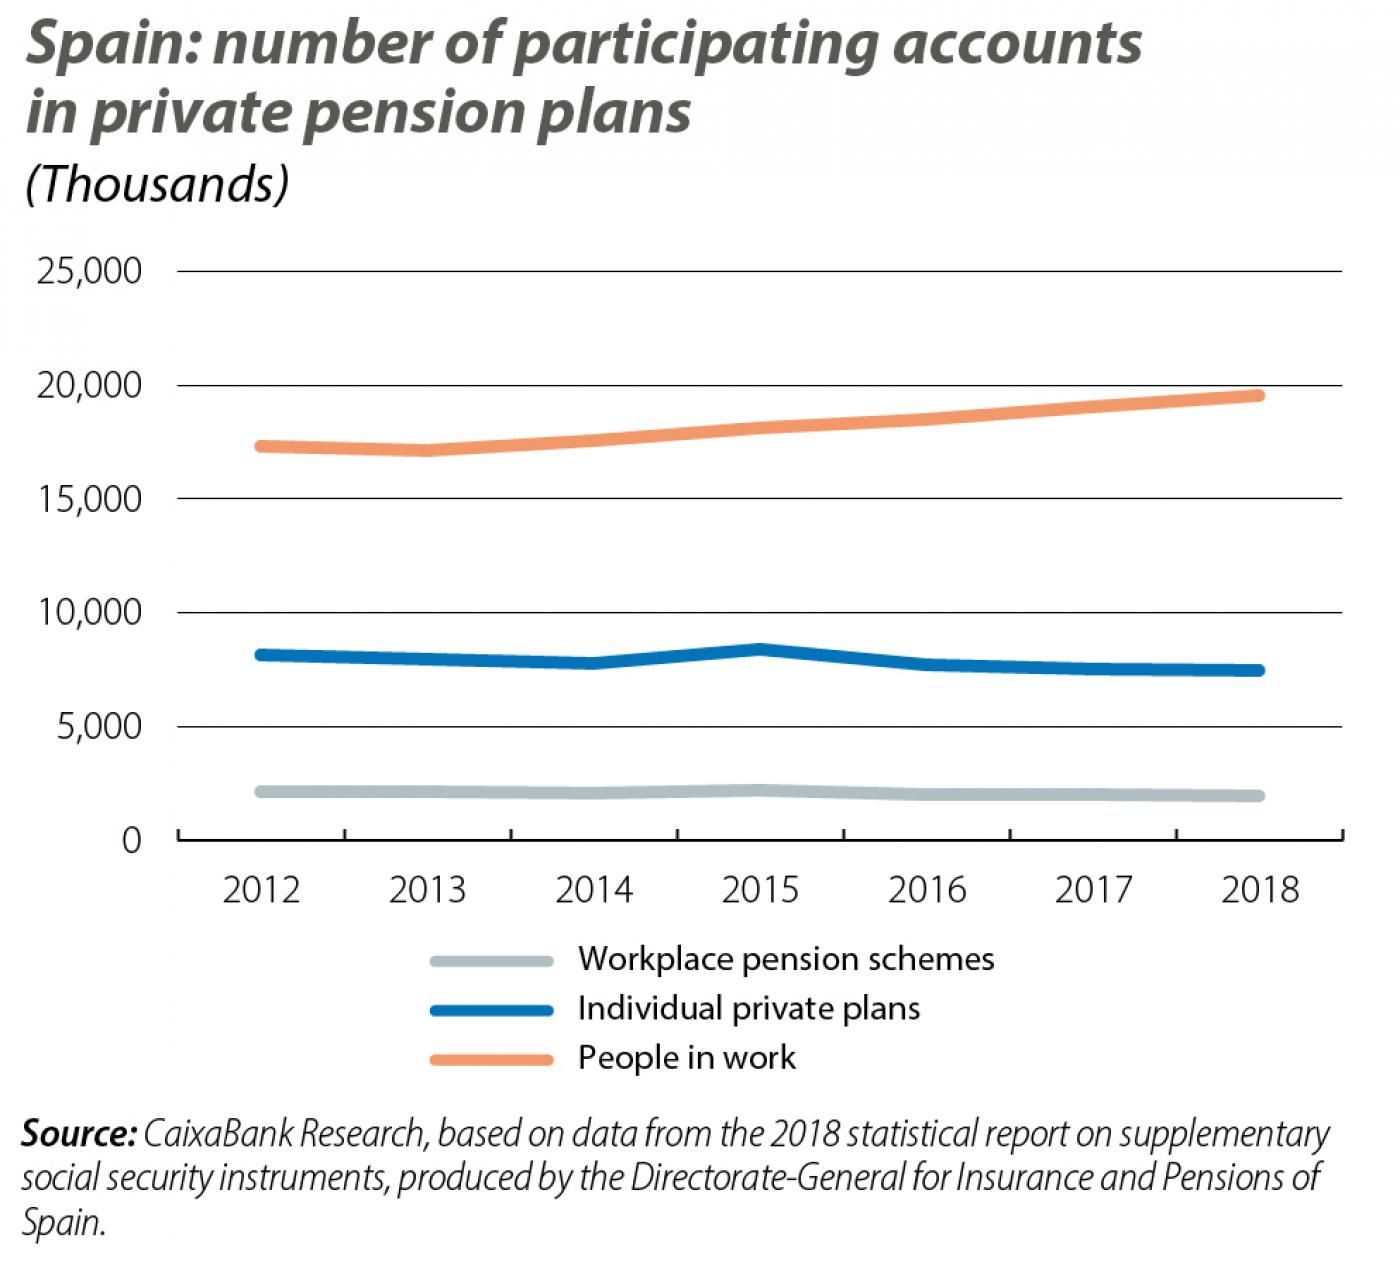 Spain: number of participating accounts in private pension plans